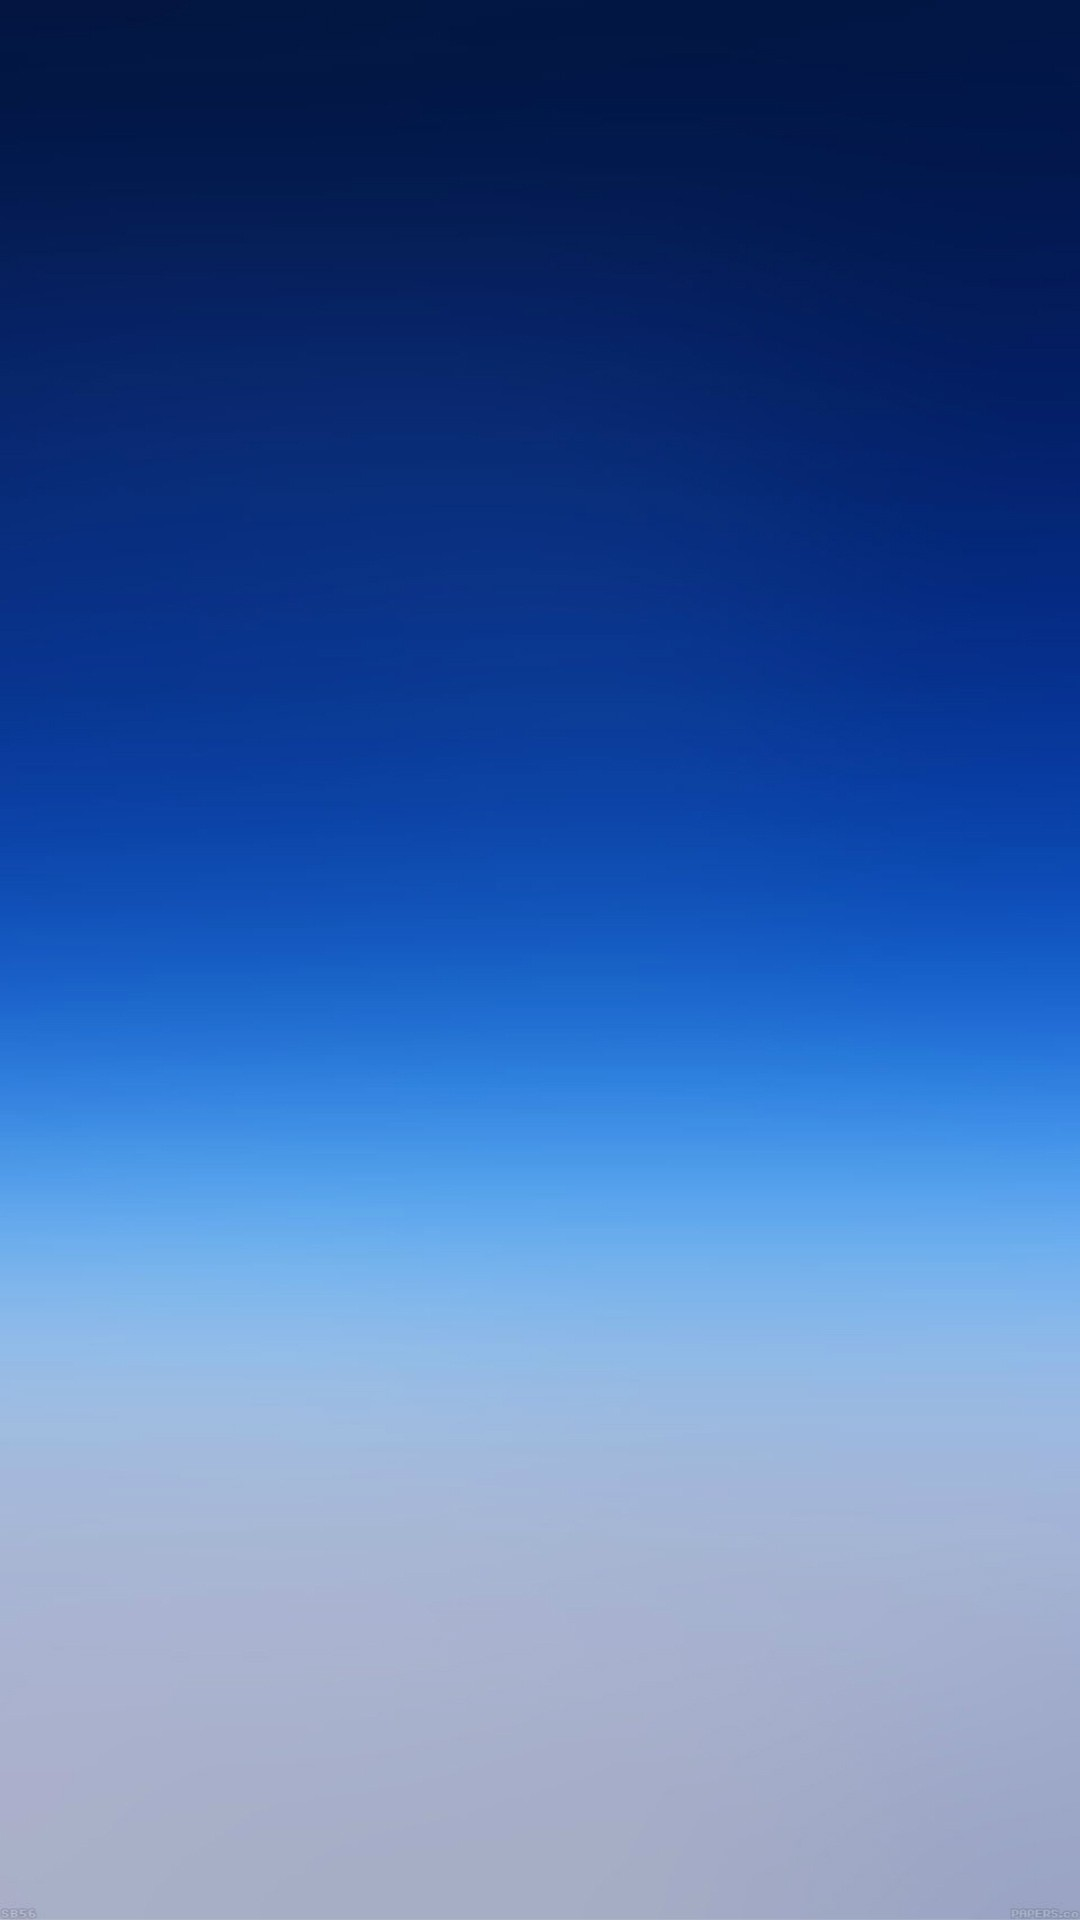 How To Make Video Wallpaper Iphone X Background Gradient 183 ① Download Free High Resolution